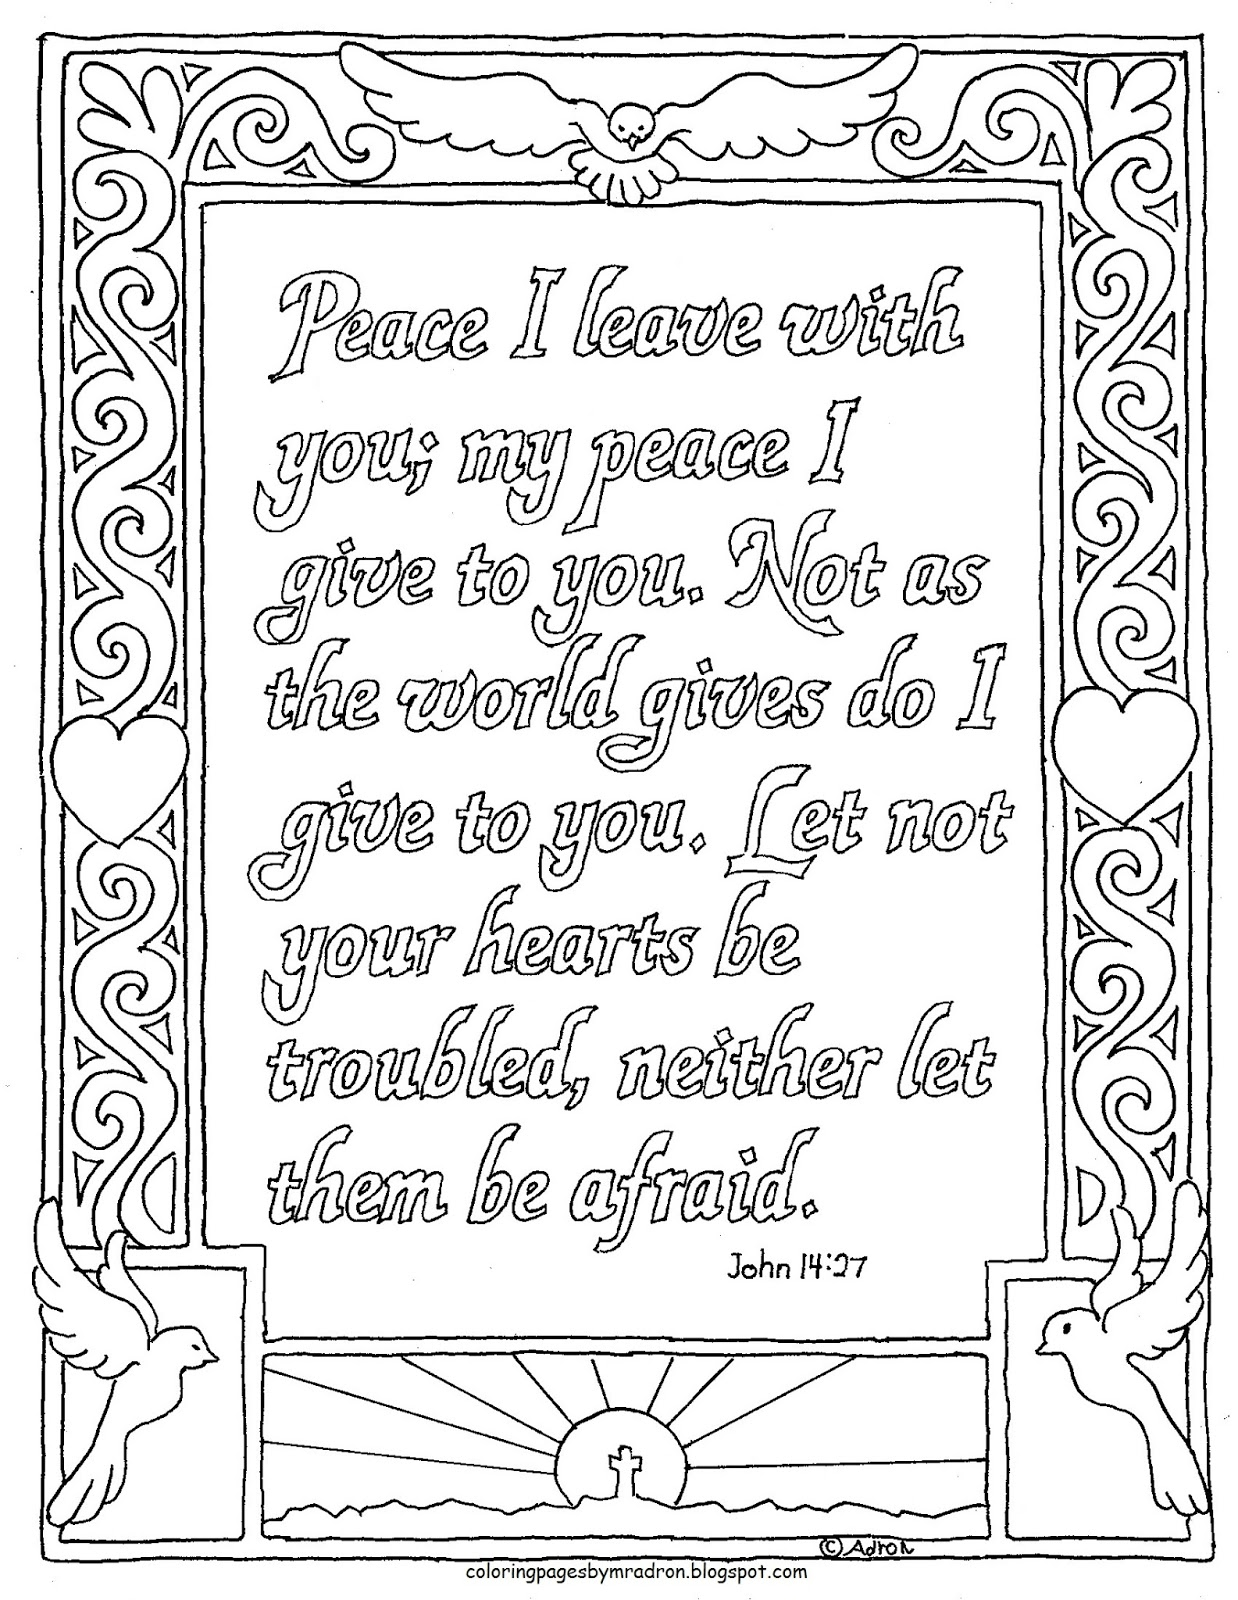 Pin by Hannah Burgdorf on Coloring: Bible: general | Bible ... | 1600x1238